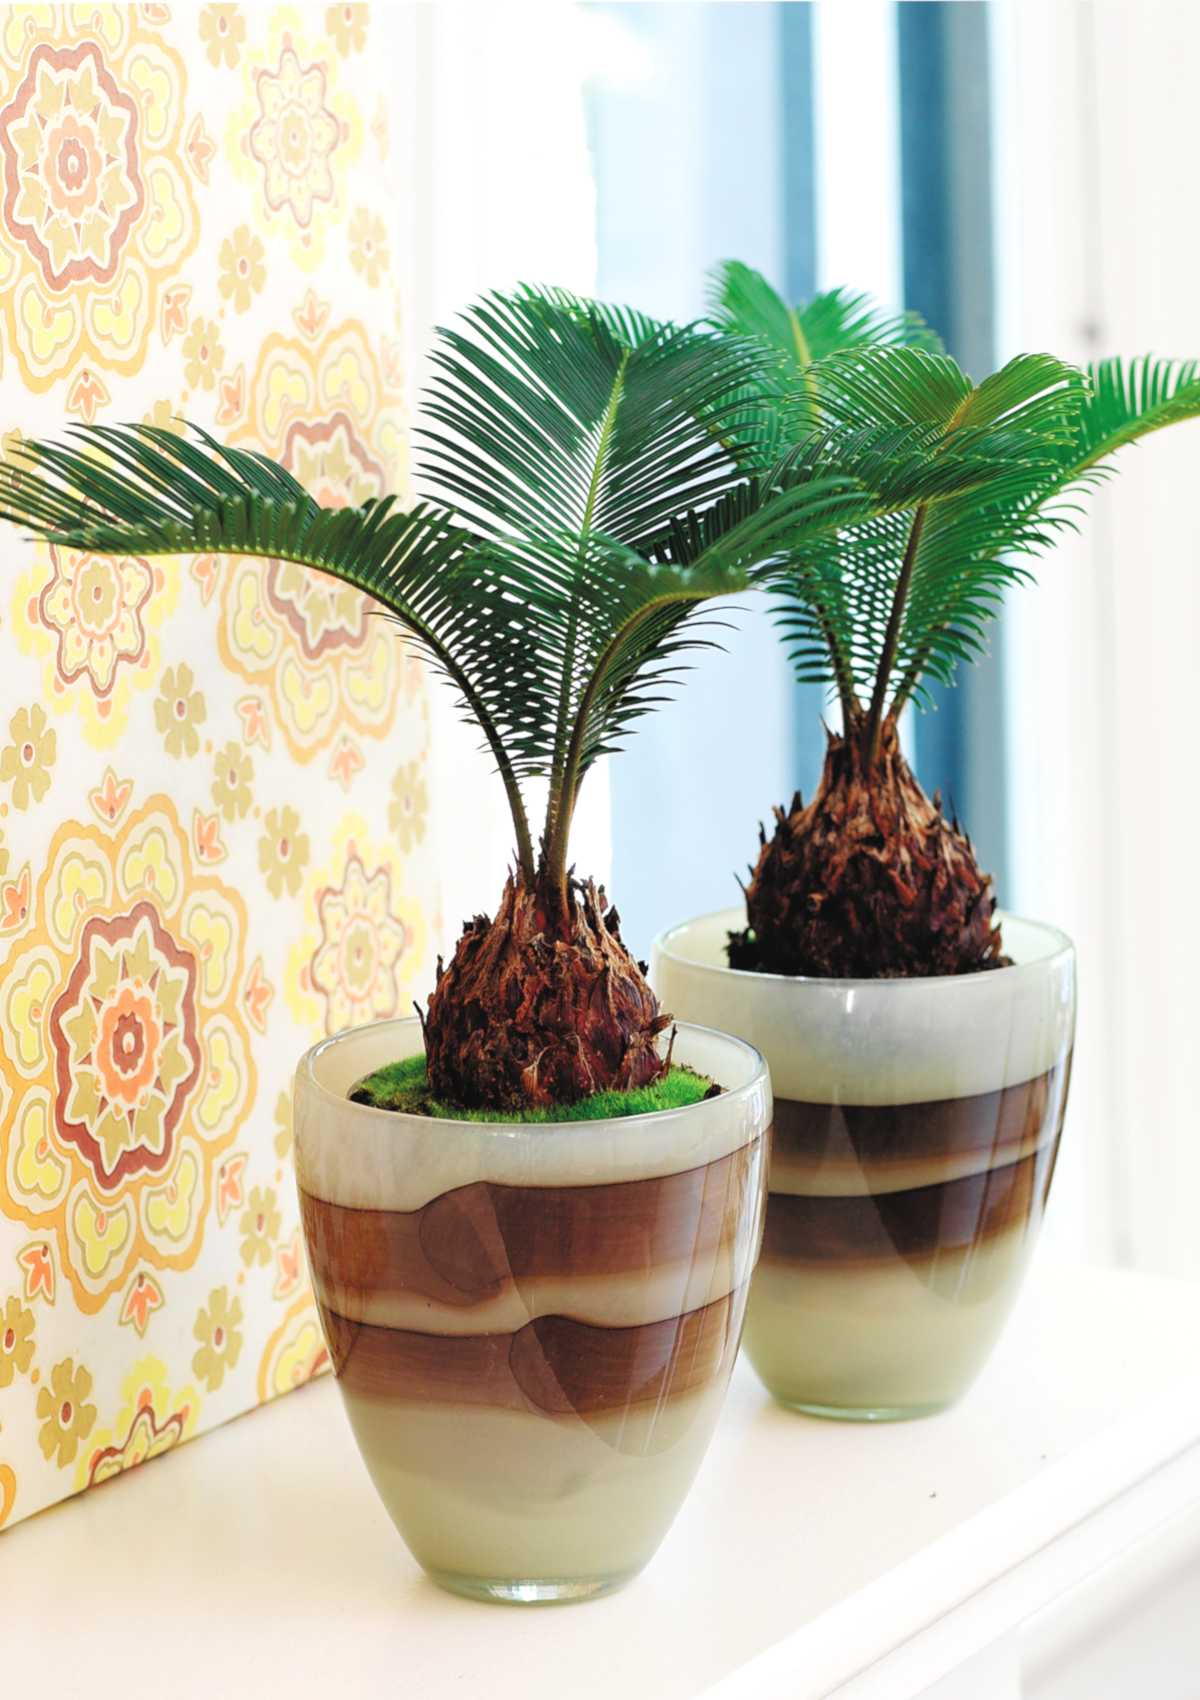 Two potted cycas, still small, on a windowsill.